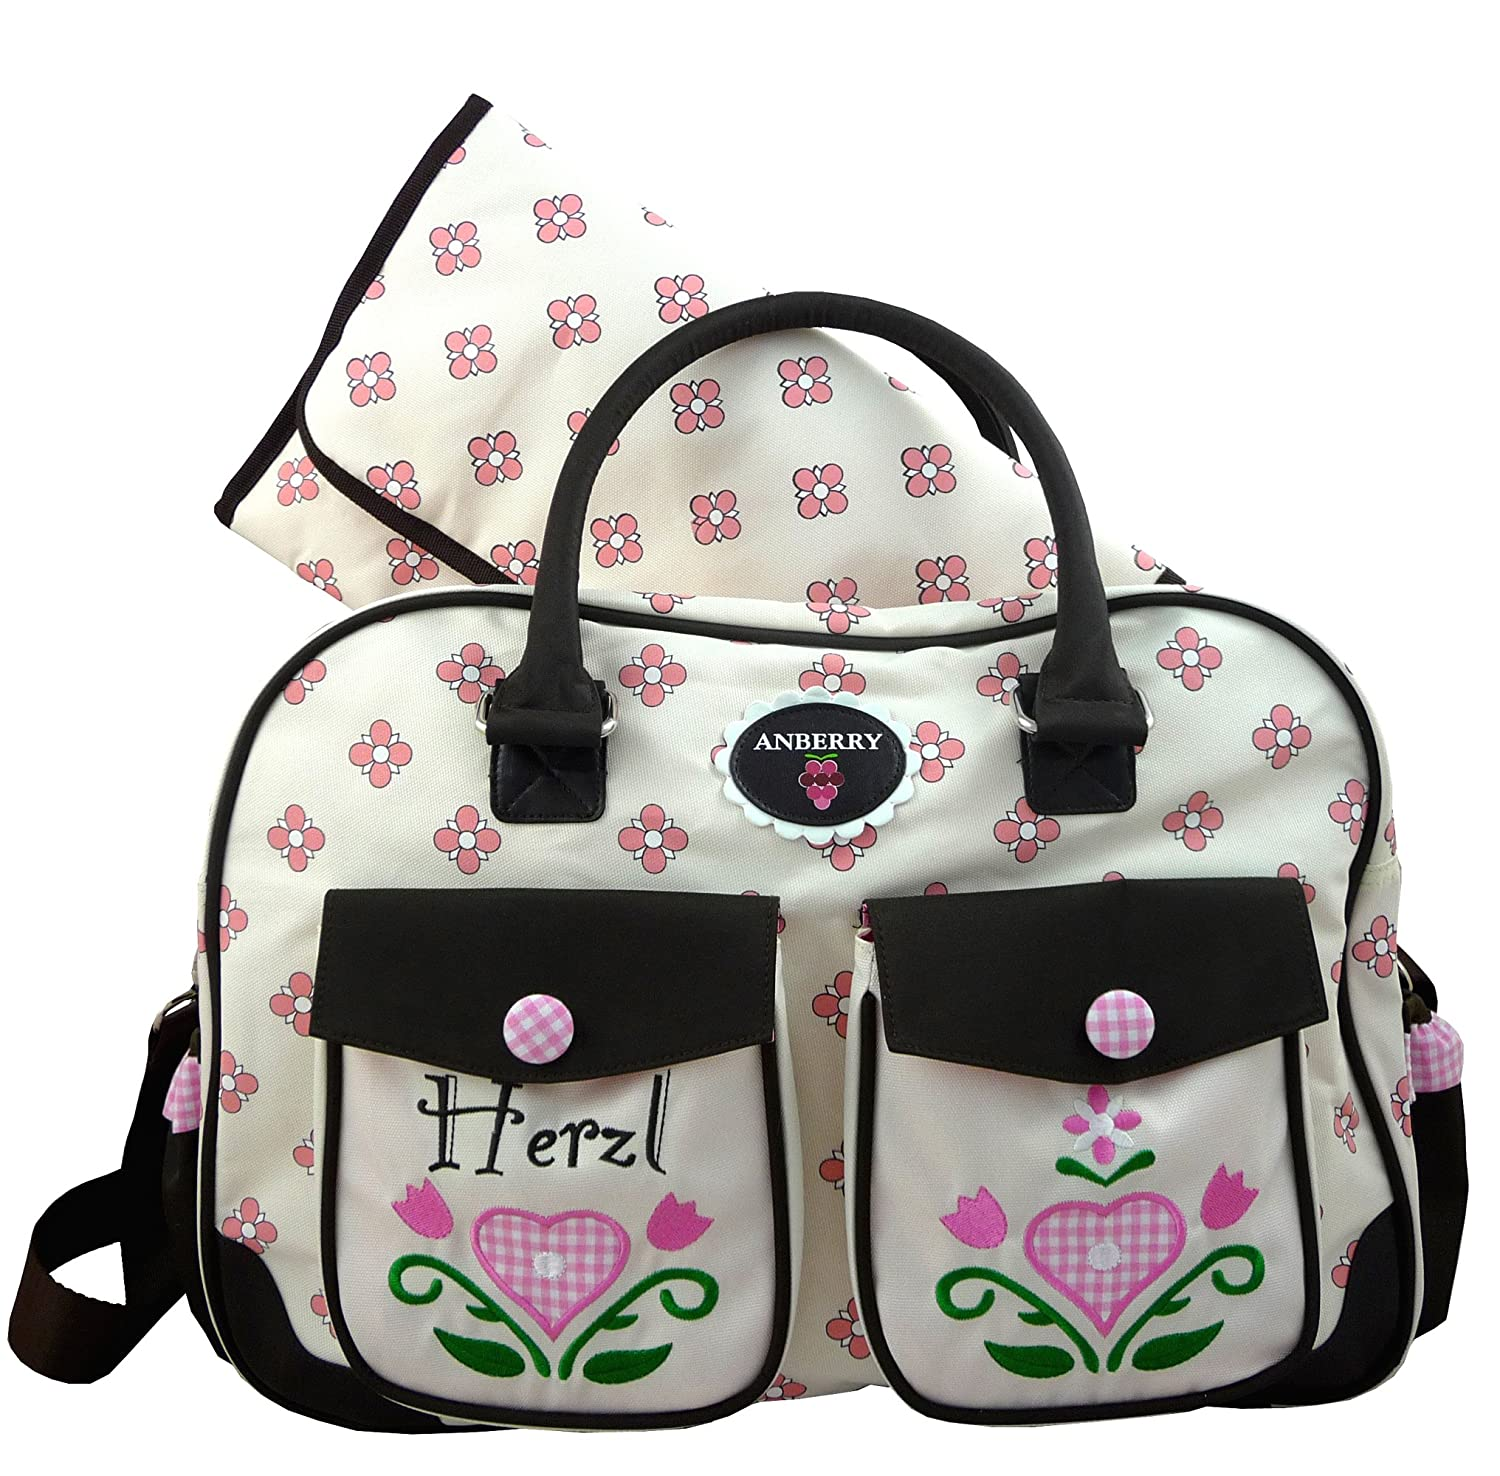 ANBERRY Wickeltasche Herzl on Tour - Diaperbag Light Pink - Rosa